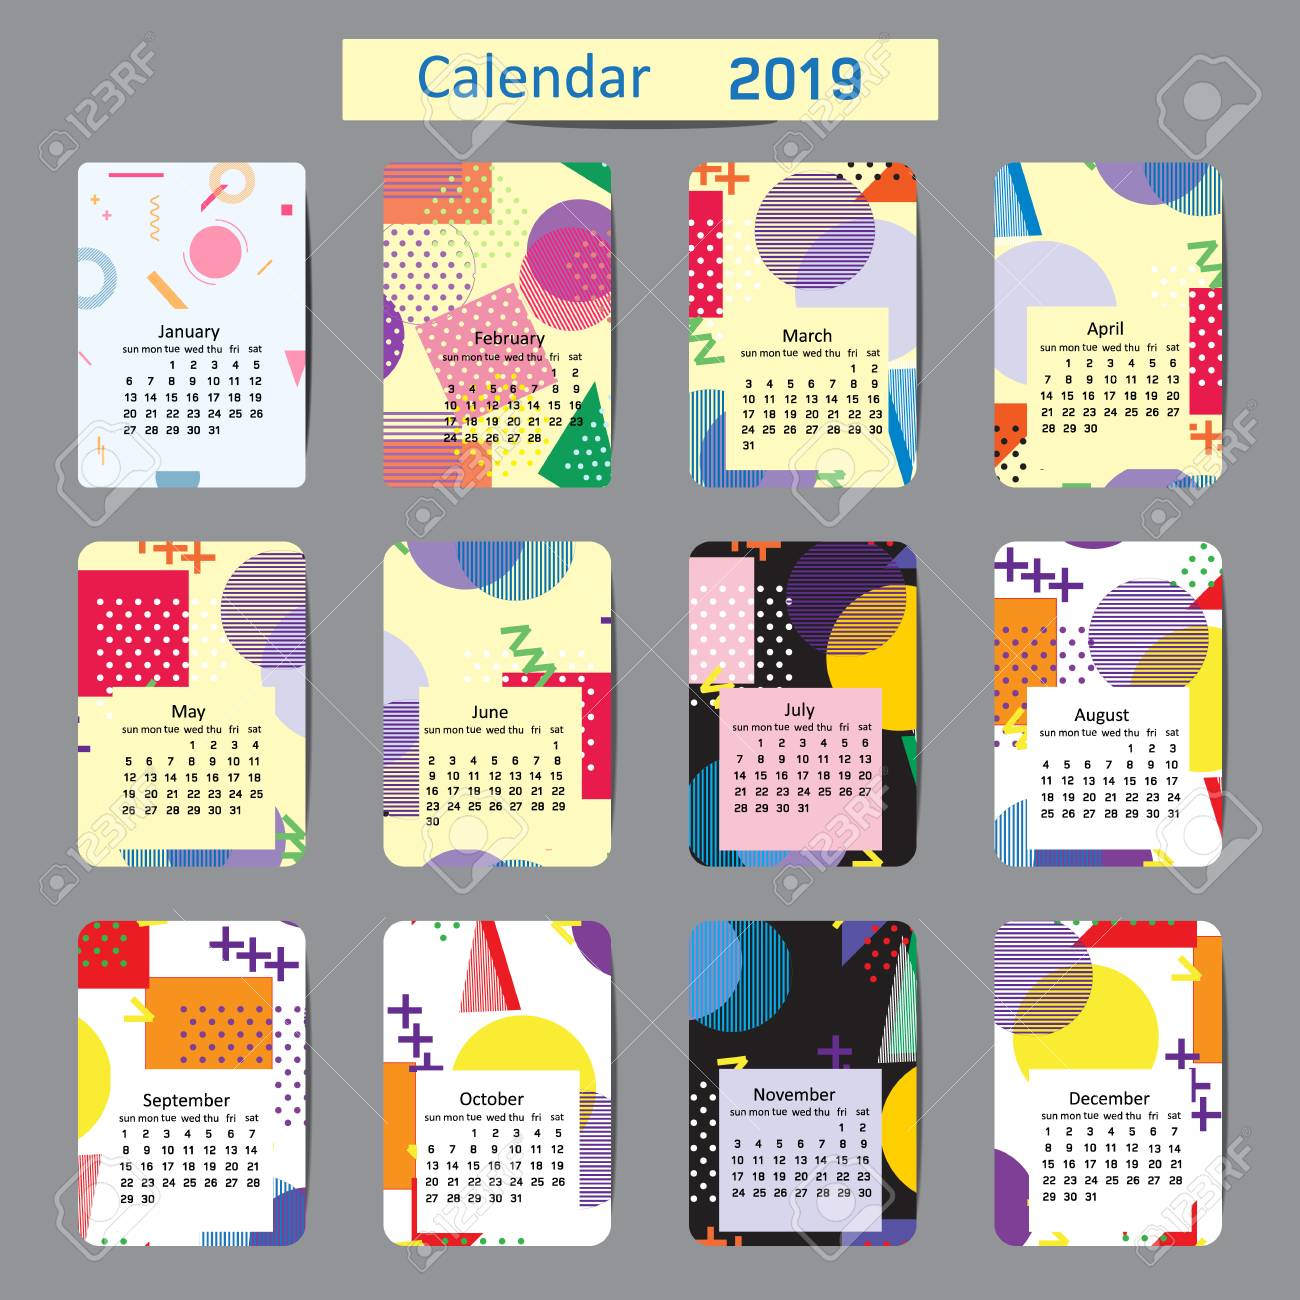 Calendar February 2019 Snake Background Cute Calendar For 2019, Original Backgrounds, Pastel Colors Vector